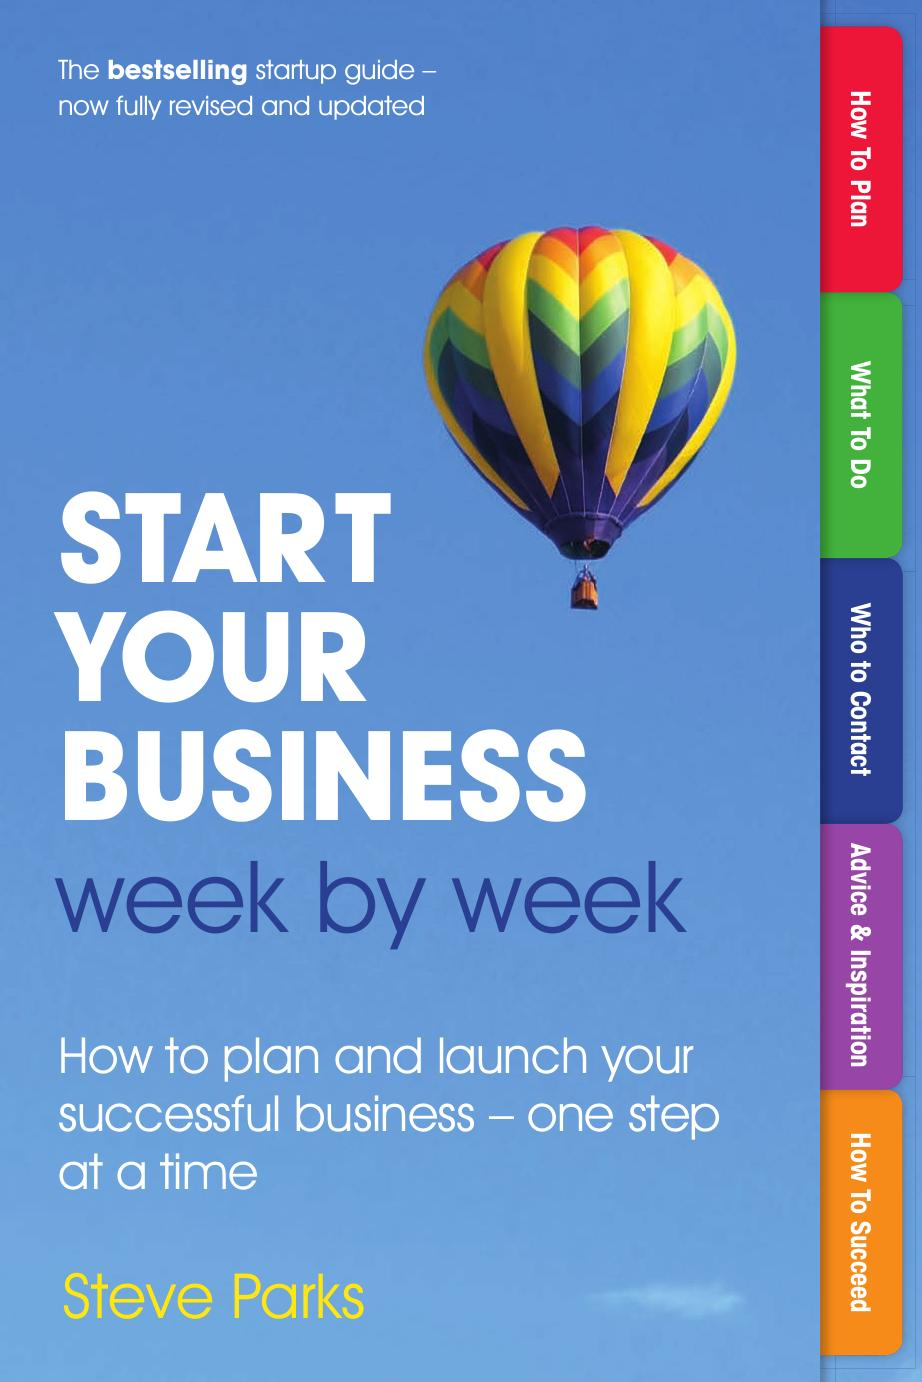 Start Your Business Week by Week: How to plan and launch your successful business - one step at a time, 2nd Edition